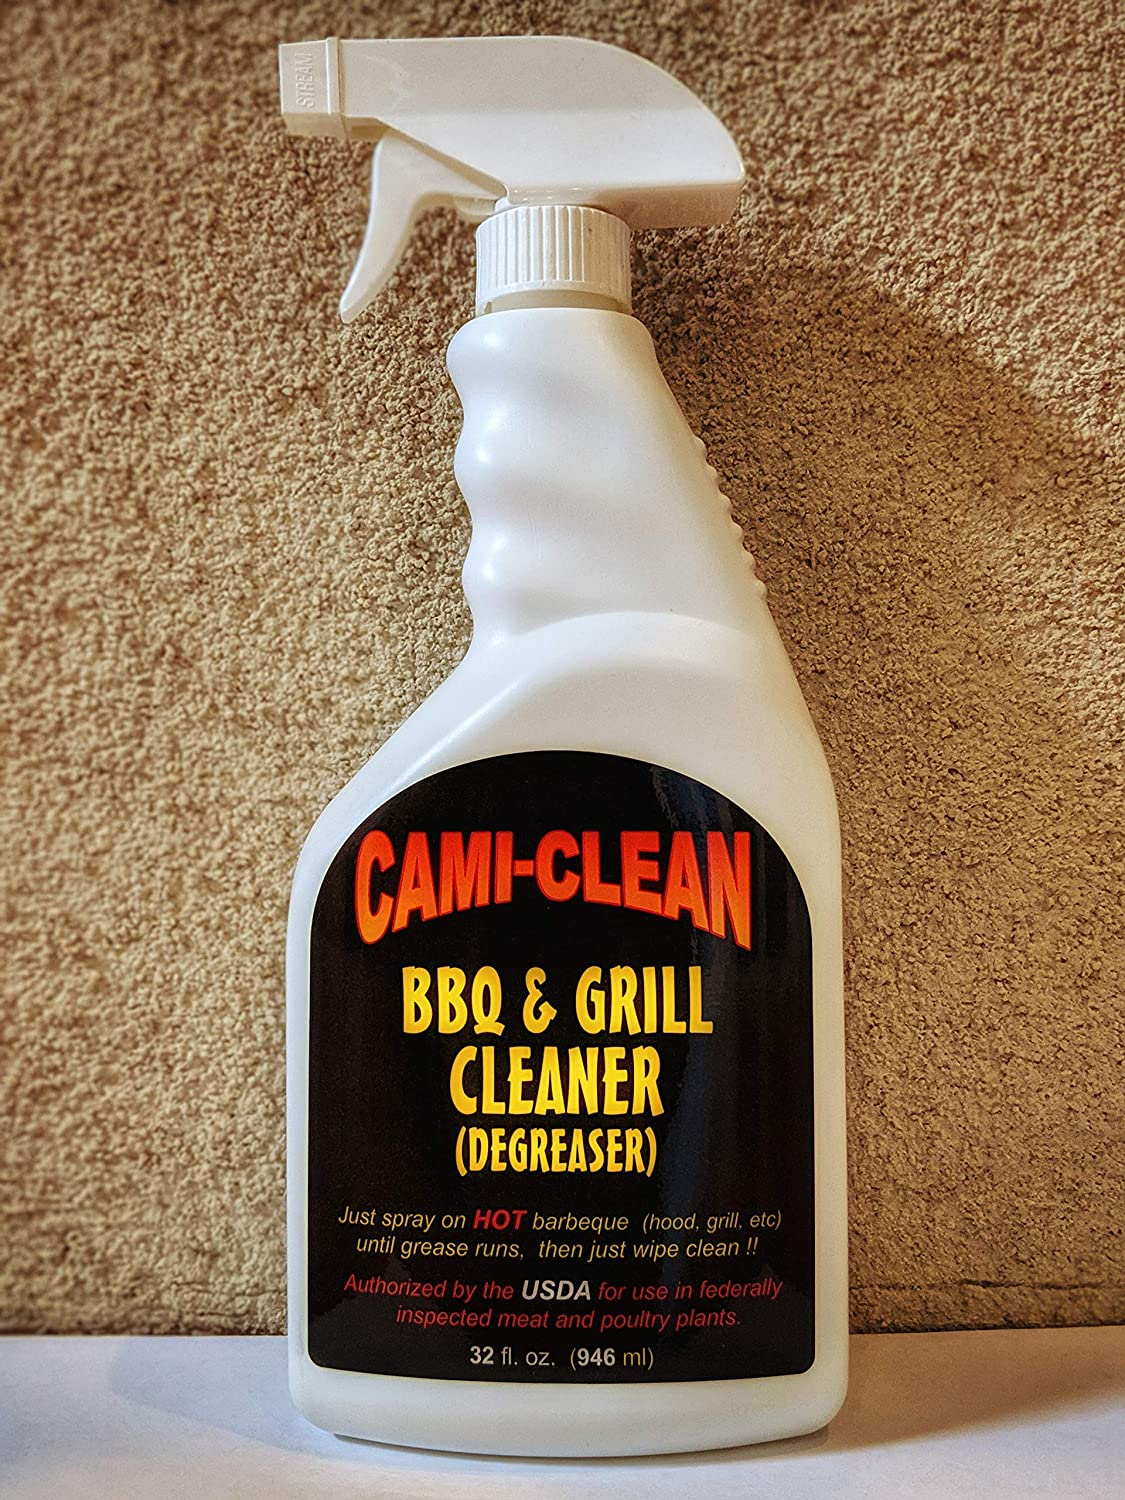 Cami-Clean BBQ & Grill Cleaner (Degreaser) - USDA Approved - Industry Favorite - Commercial Grade - Oven Cleaner & Degreaser - The Best BBQ Grill Cleaner & Degreaser